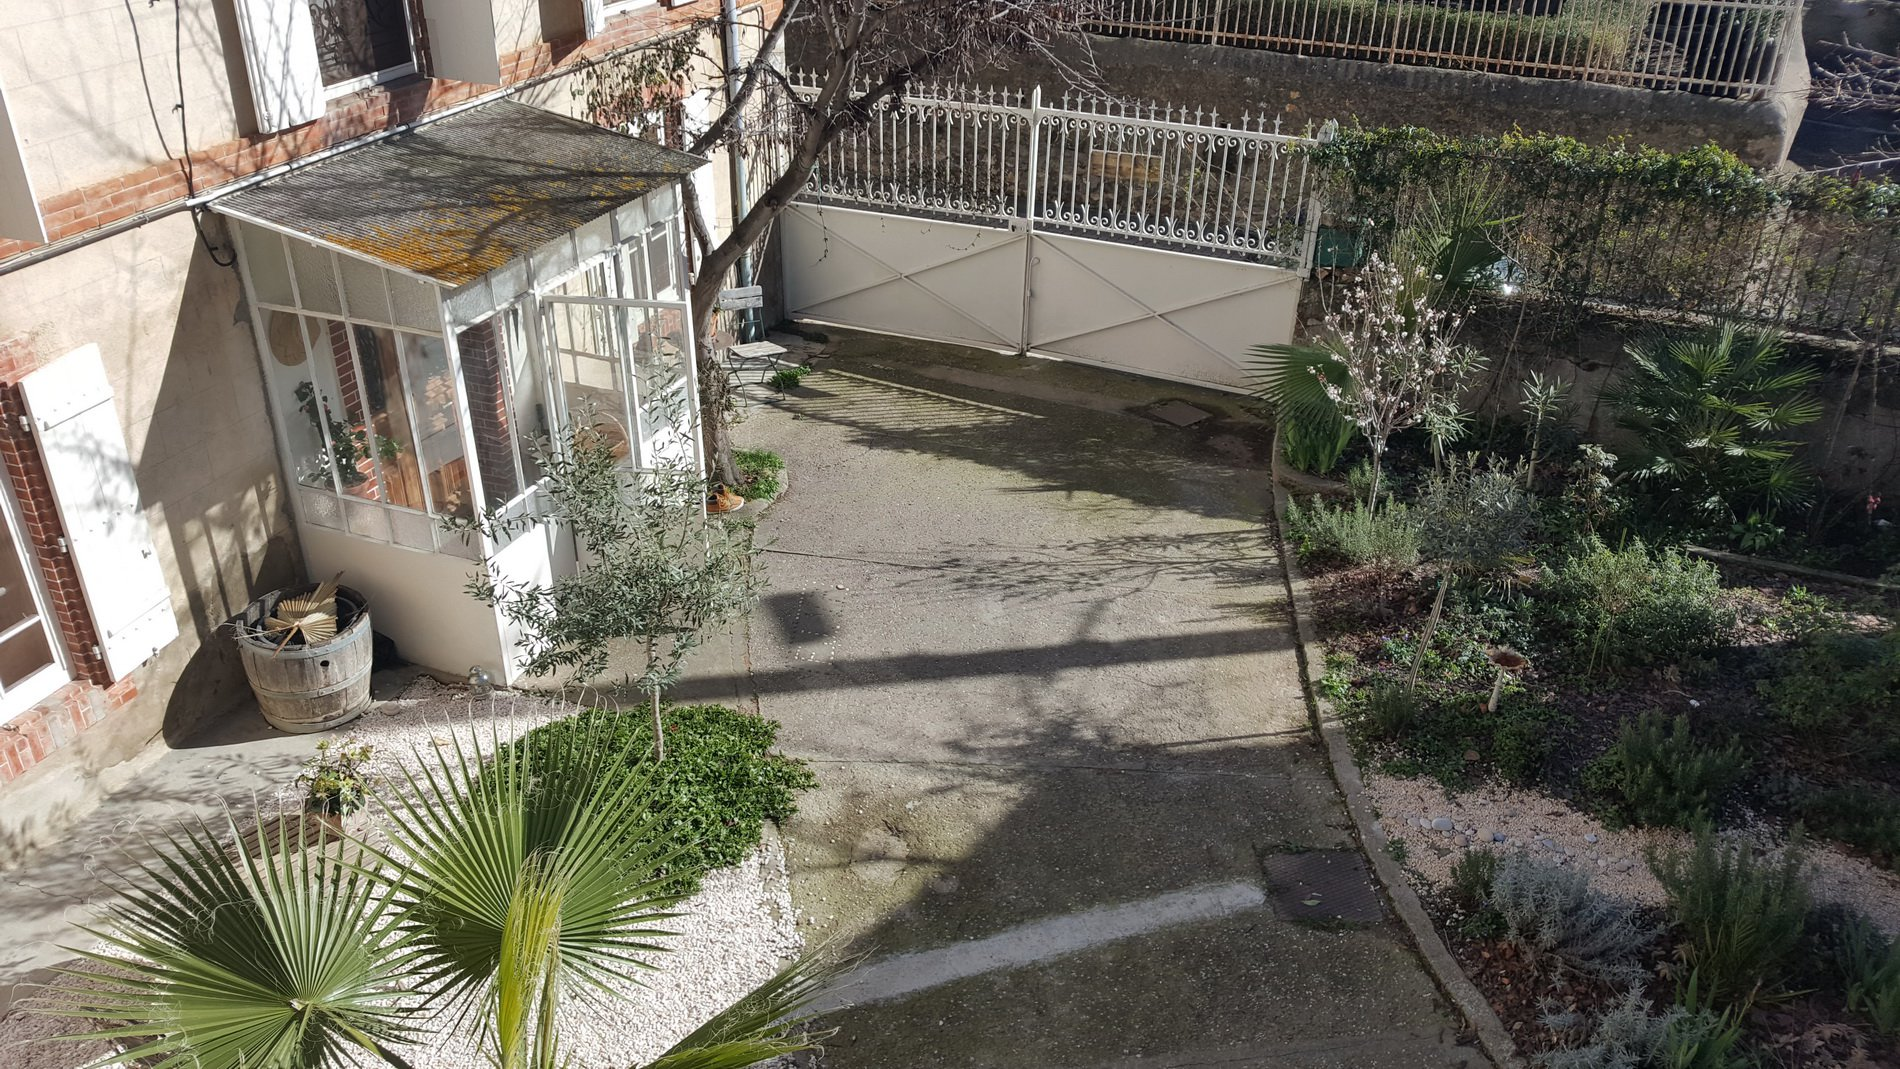 Superb house with garden and a great potential